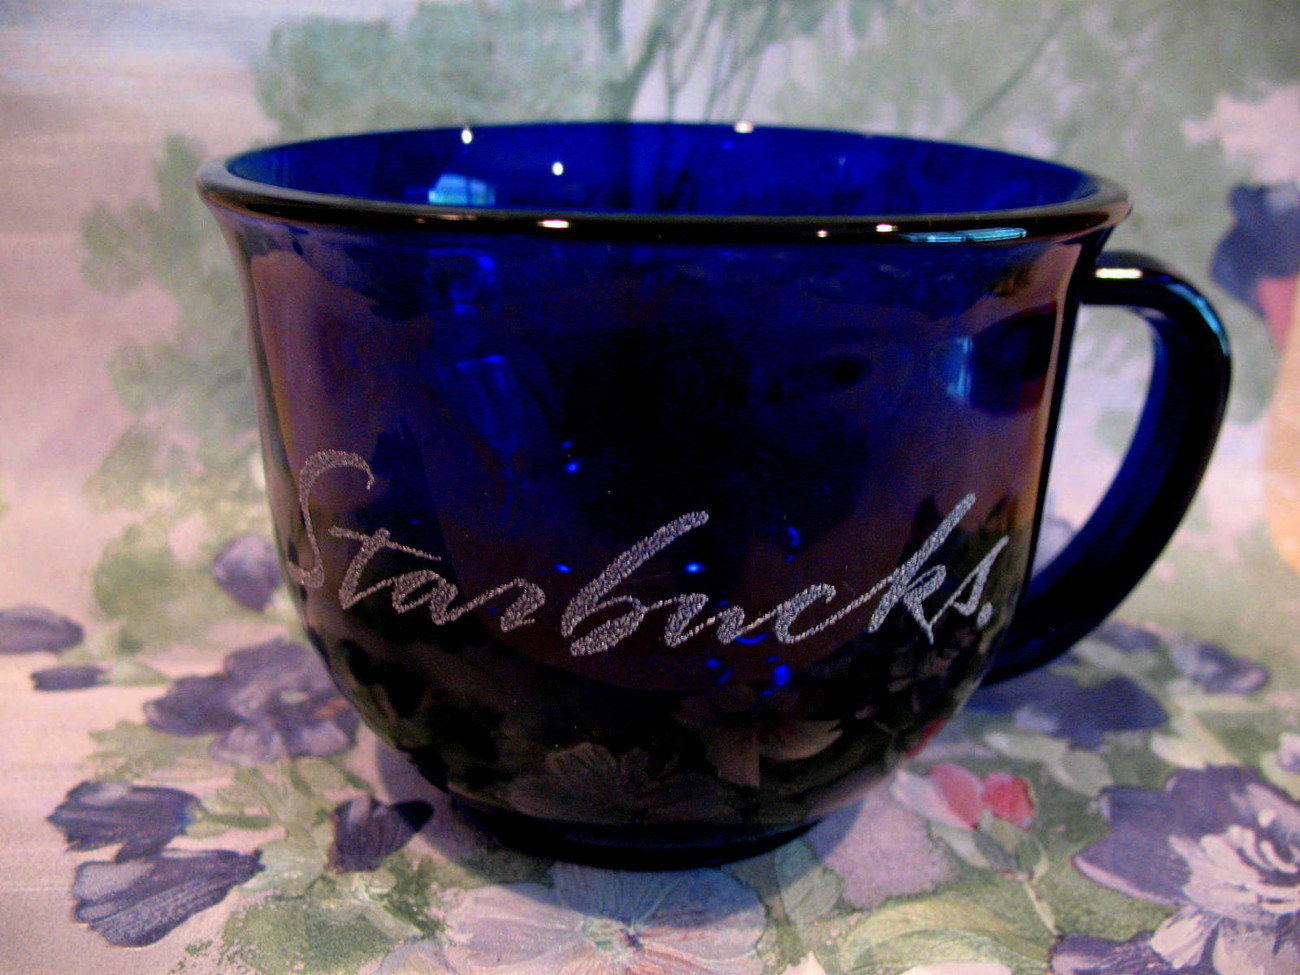 Starbucks Coffee Mug Cup Big Cobalt Blue with Etched Script Collector Souvenir